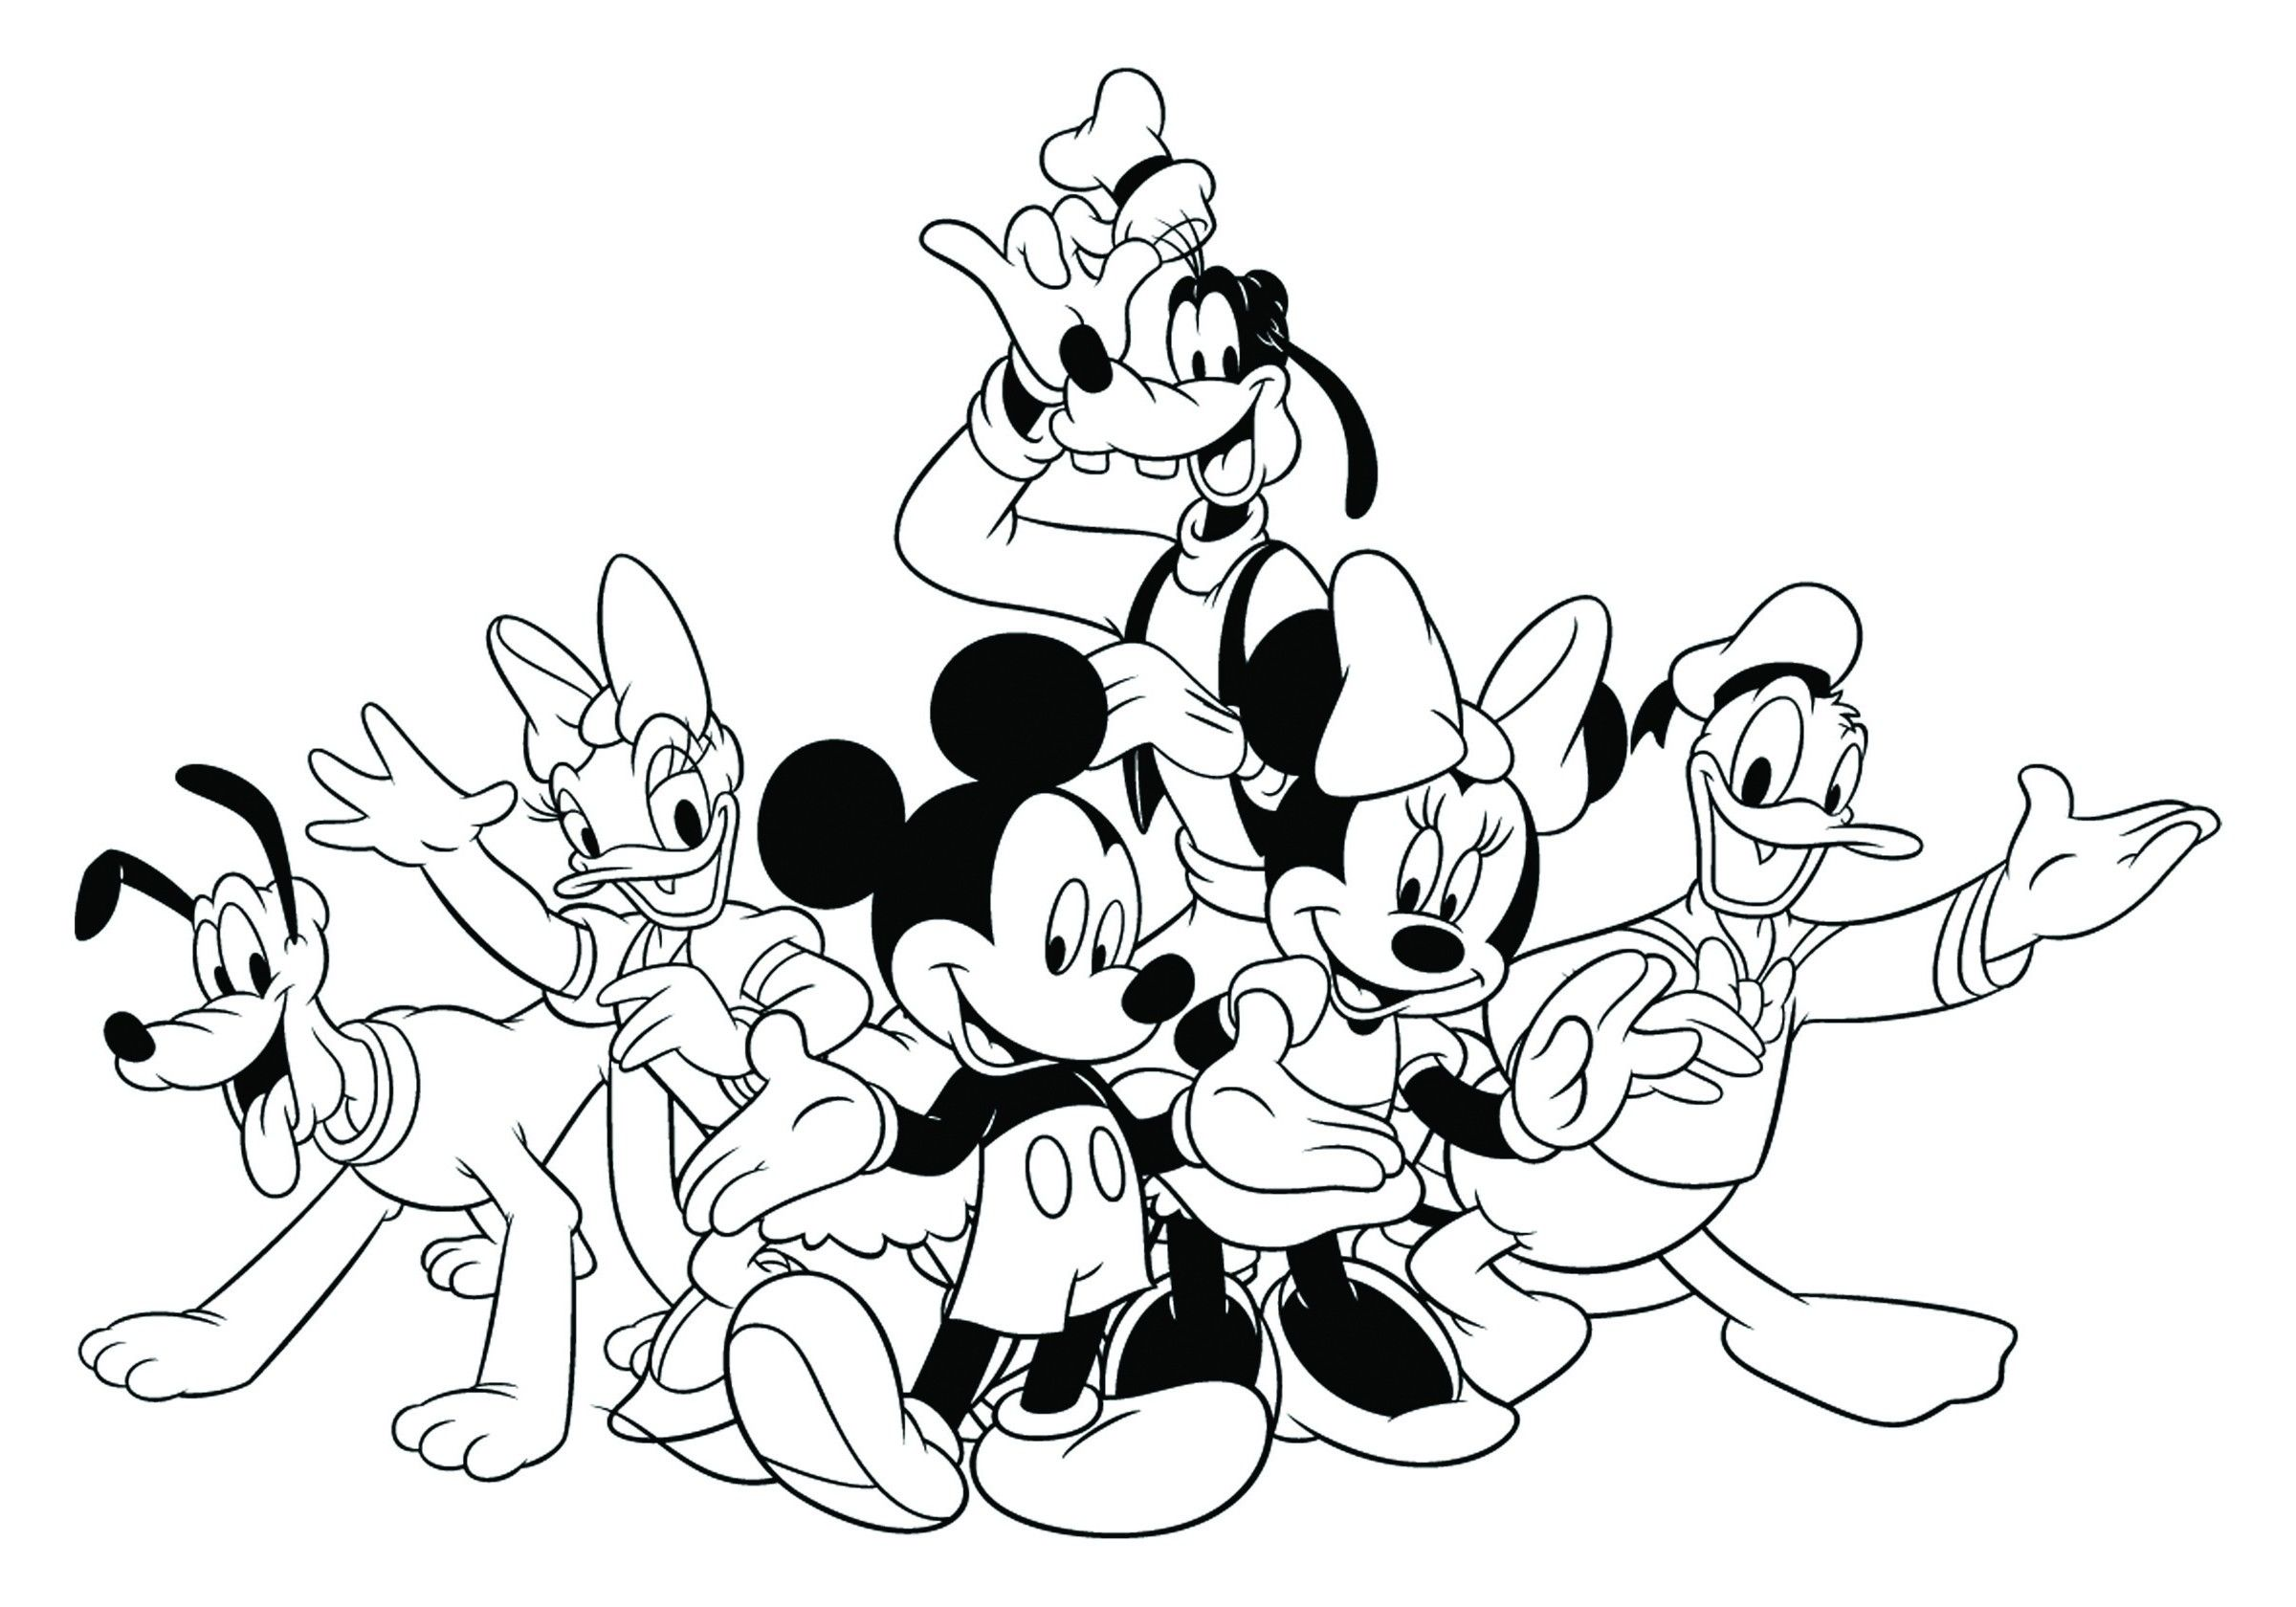 Mickey Mouse Clubhouse Coloring Mickey Mouse Clubhouse Coloring Mickey Mouse Clubhou Disney Coloring Sheets Mickey Coloring Pages Mickey Mouse Coloring Pages